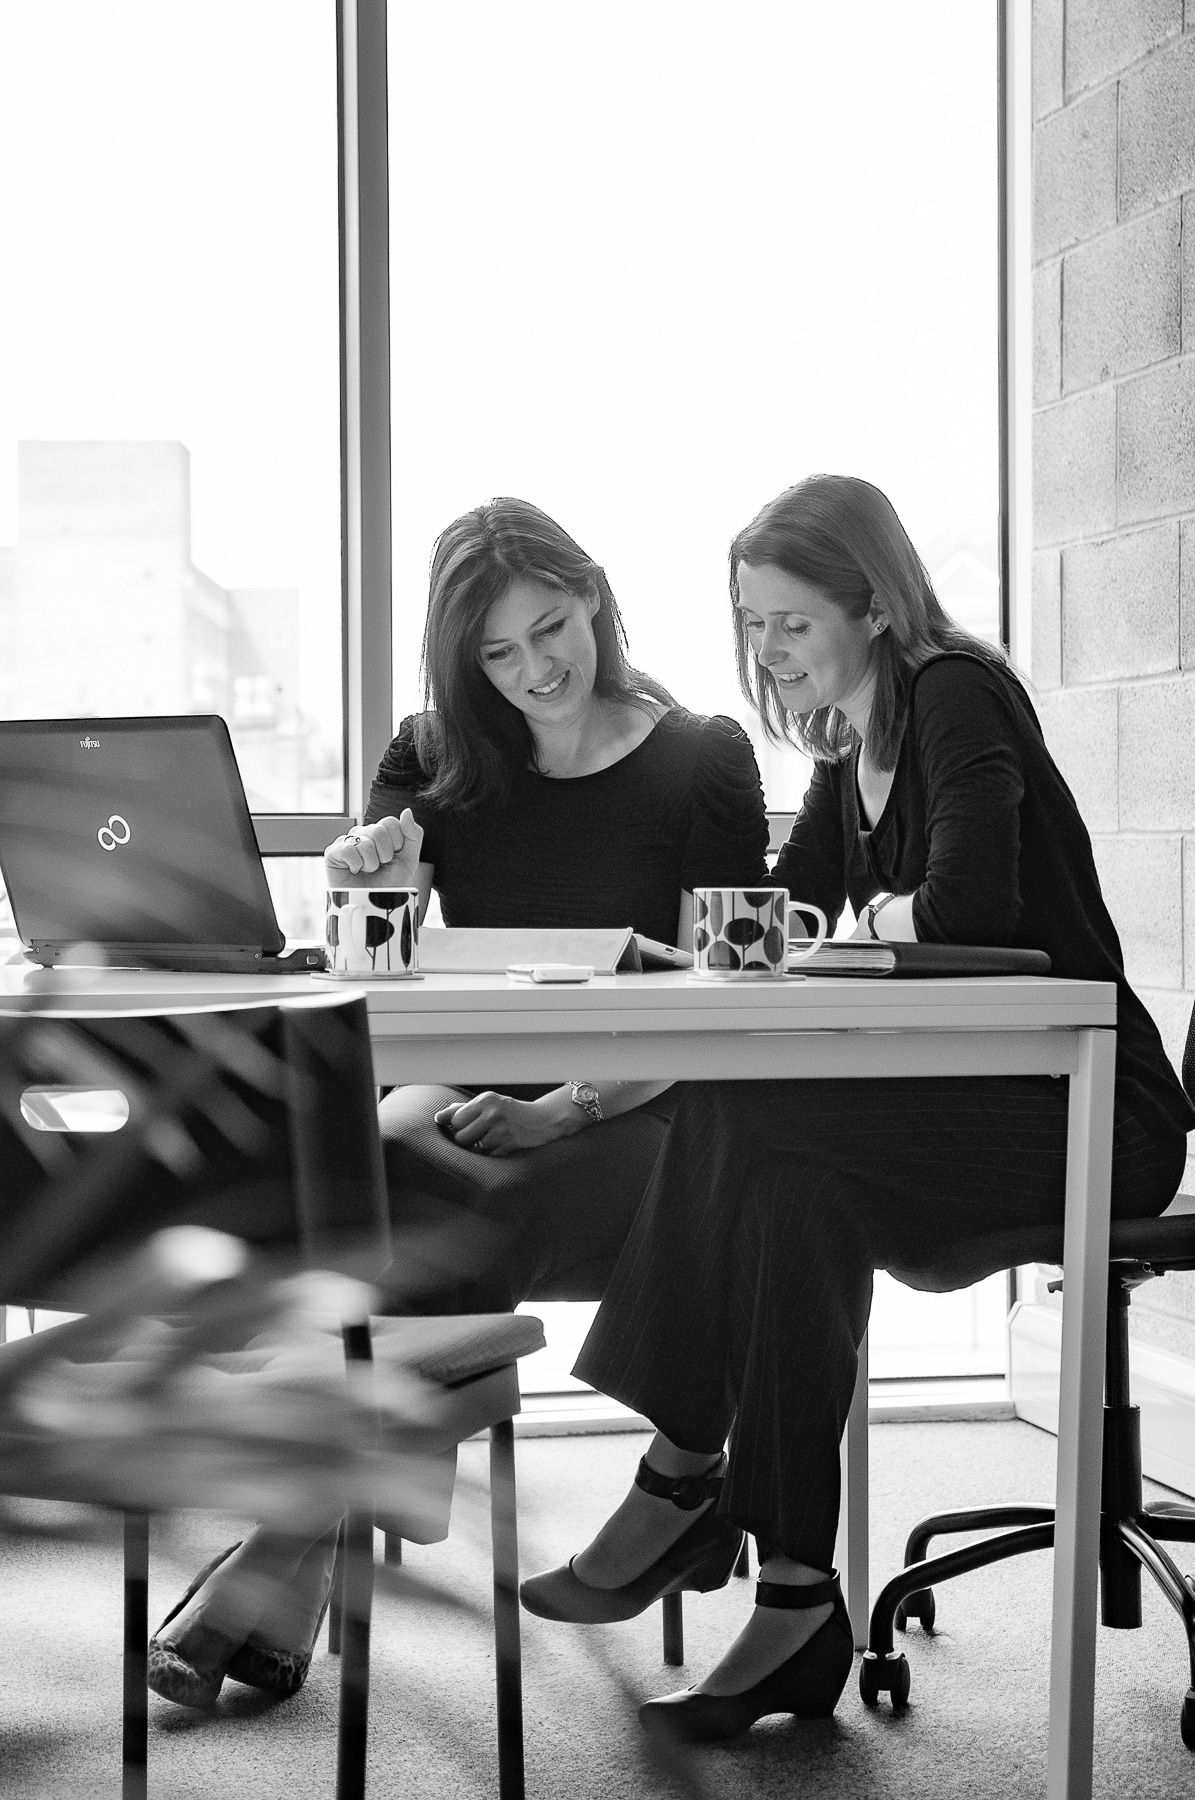 Black and white image of two women in a modern city office working together at a desk